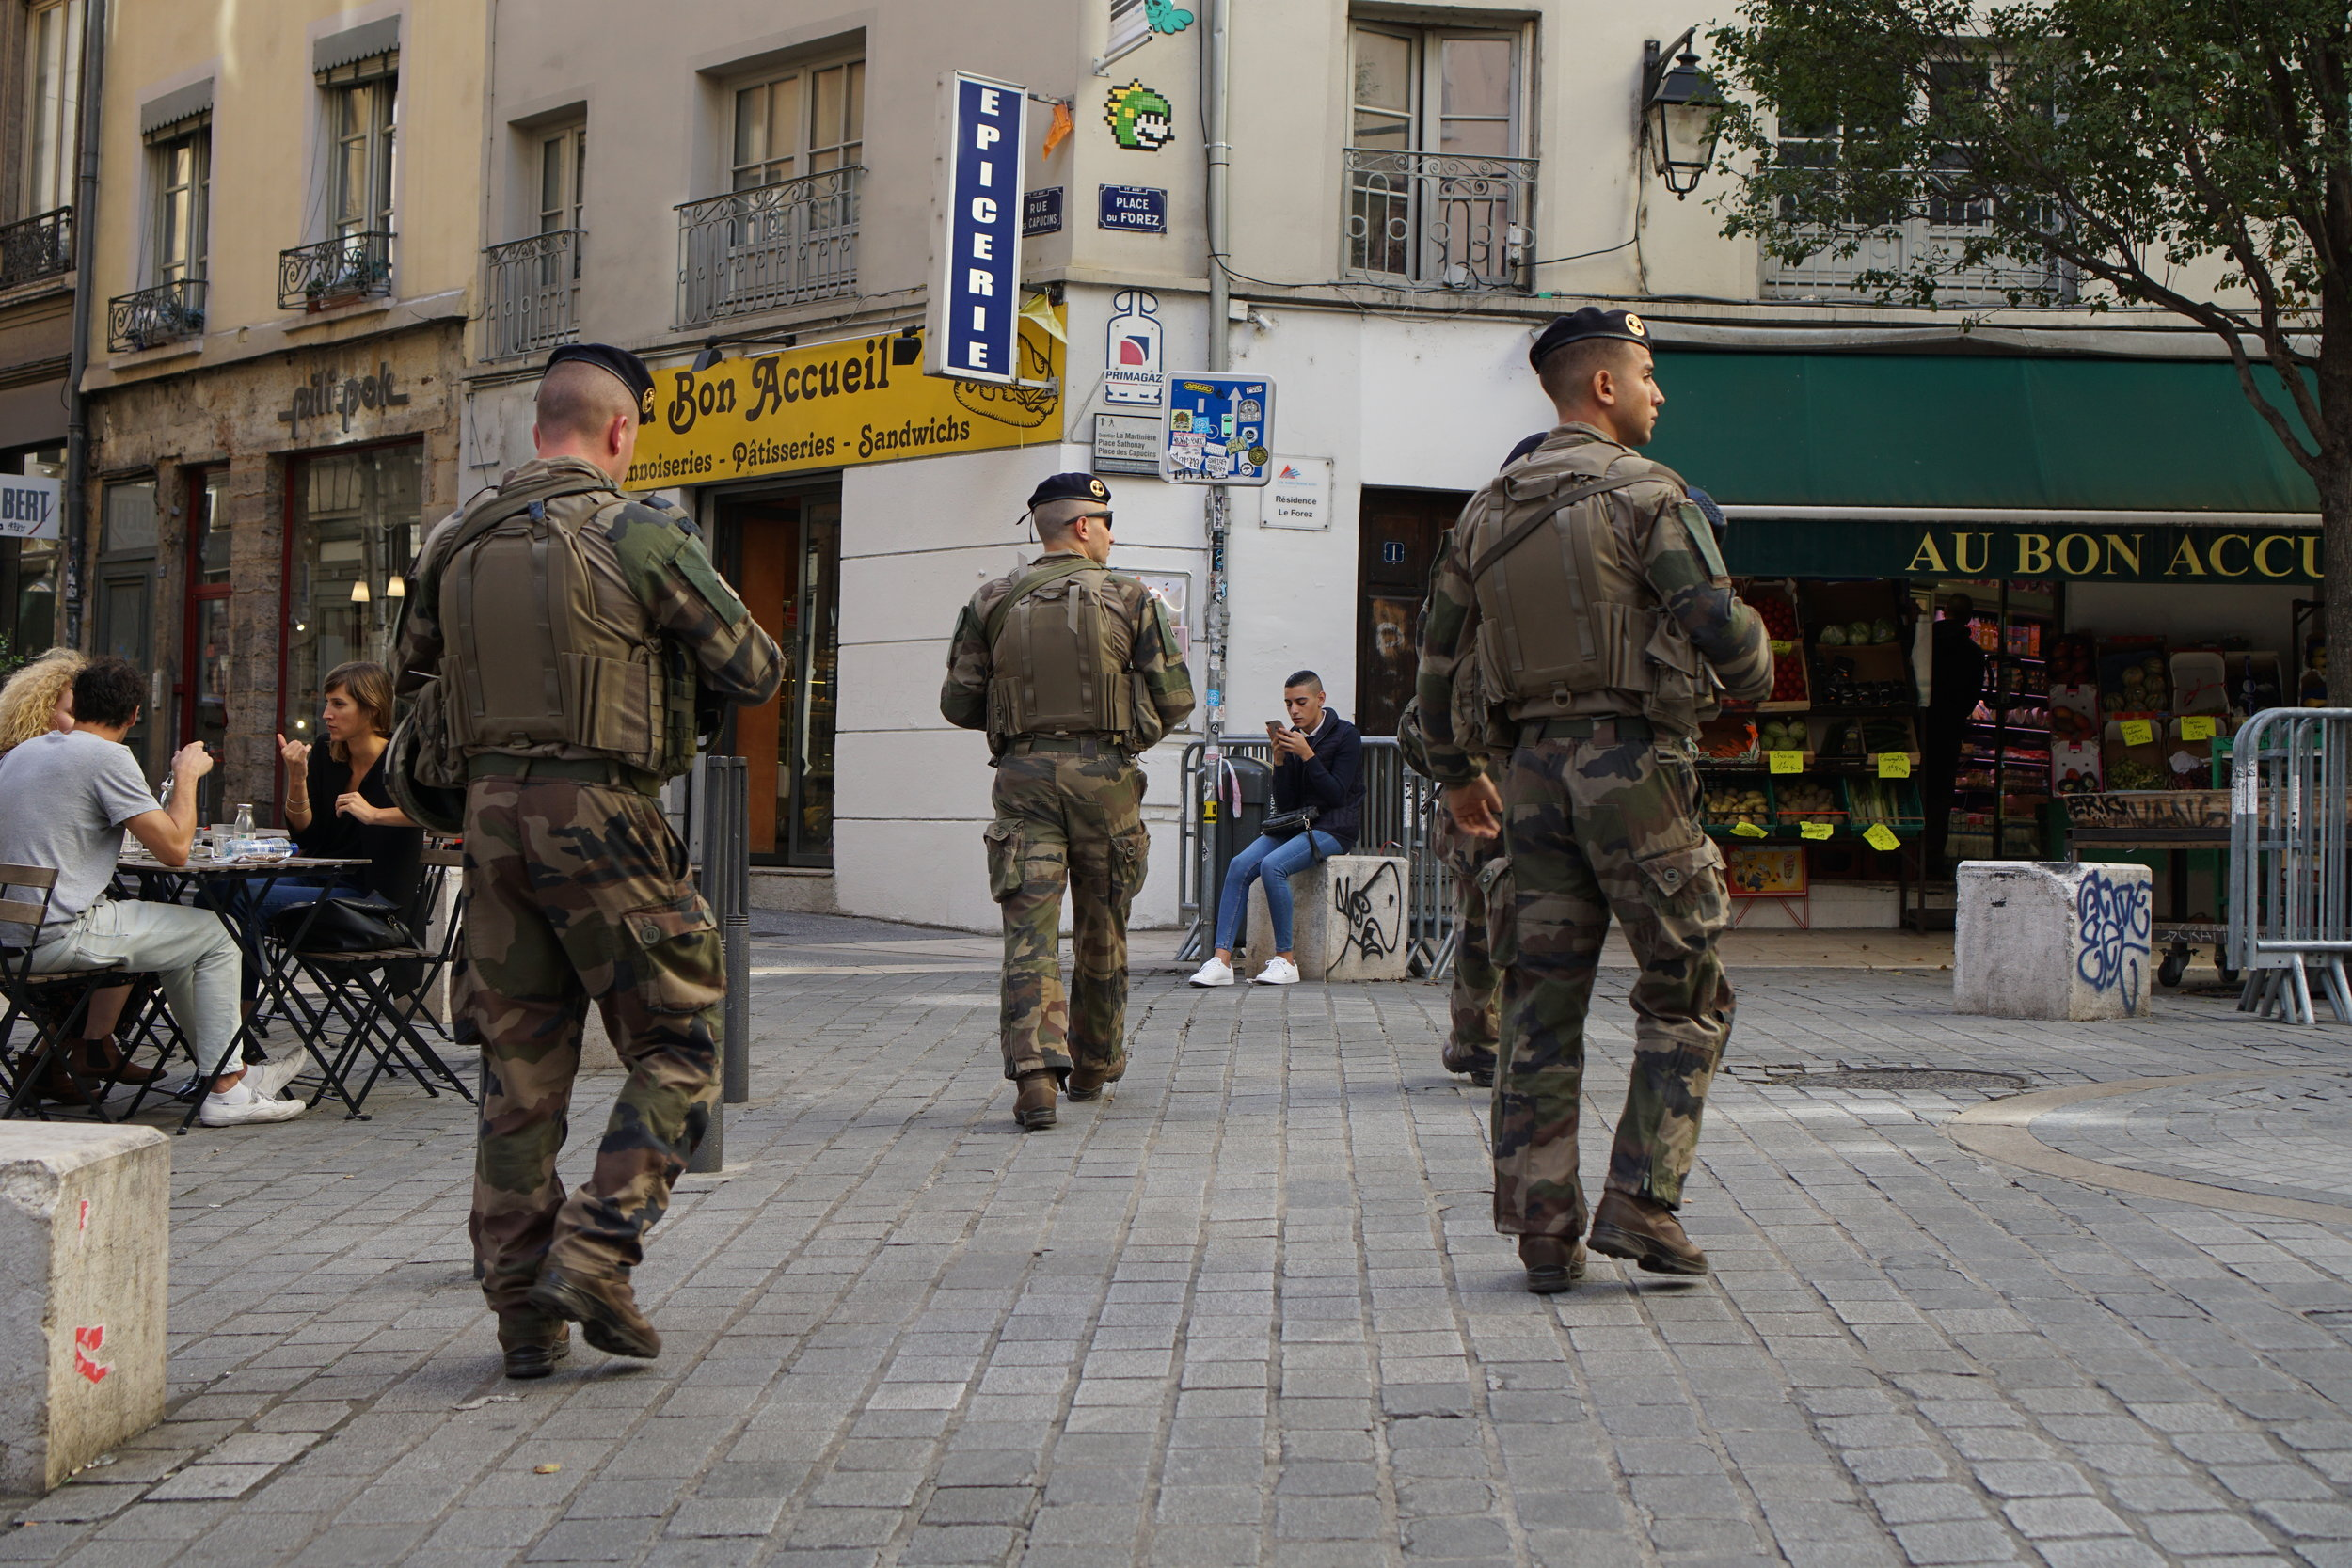 Military officers from Opération Sentinelle patrol the streets in the Croix-Rousse neighborhood of Lyon. Opération Sentinelle is an ongoing state of emergency operation in France due to continuing terror threats and attacks.